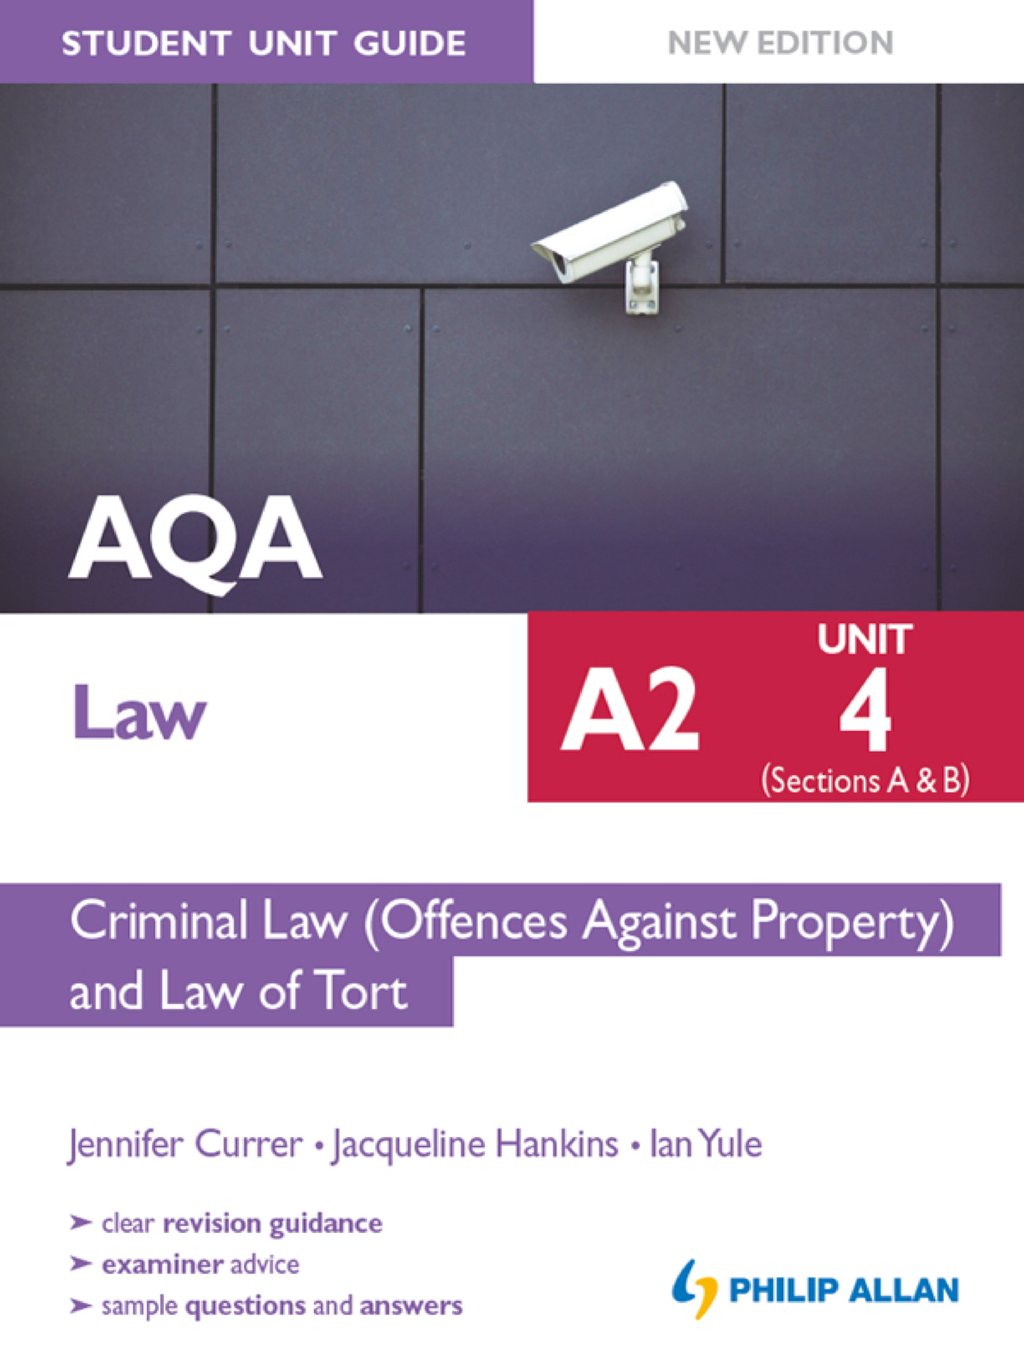 AQA Law A2 Student Unit Guide: Unit 4 (Sections A & B) Criminal Law (Offences Against Property) and Law of Tort New Edition eBook ePub          Criminal Law (Offences Against Property)